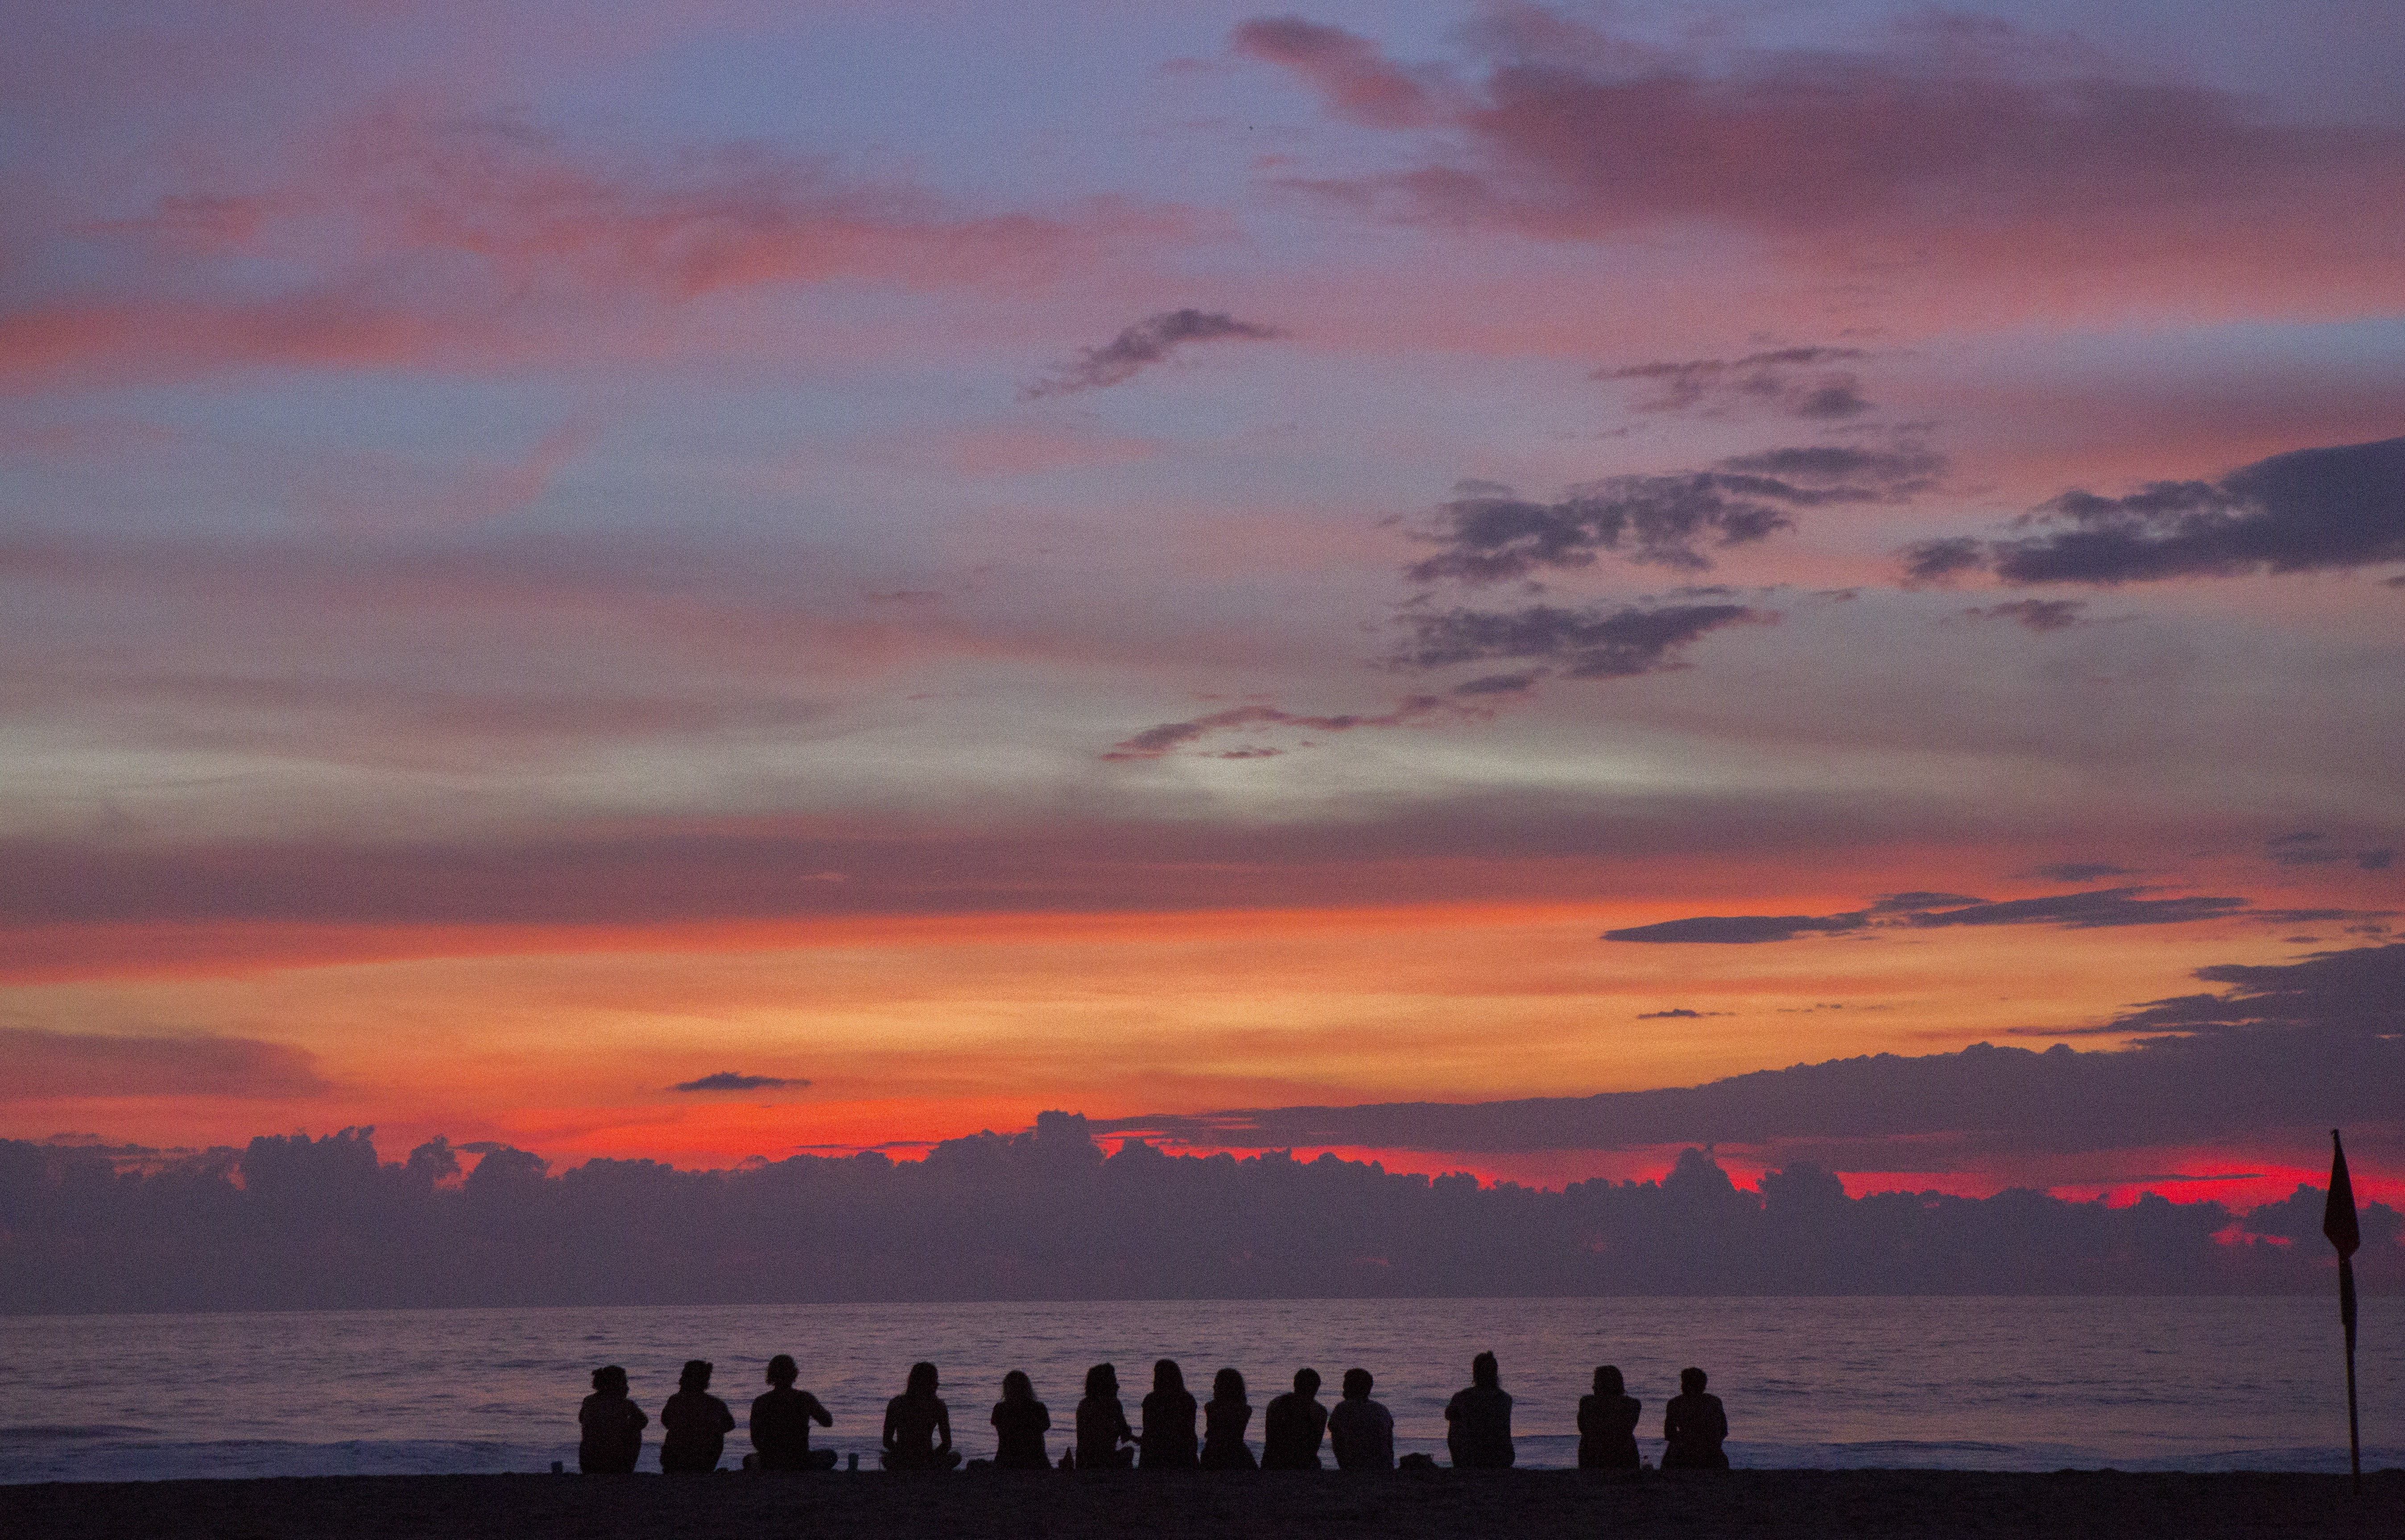 Thirteen people are silhouetted against a setting sun coloring the sky vibrantly